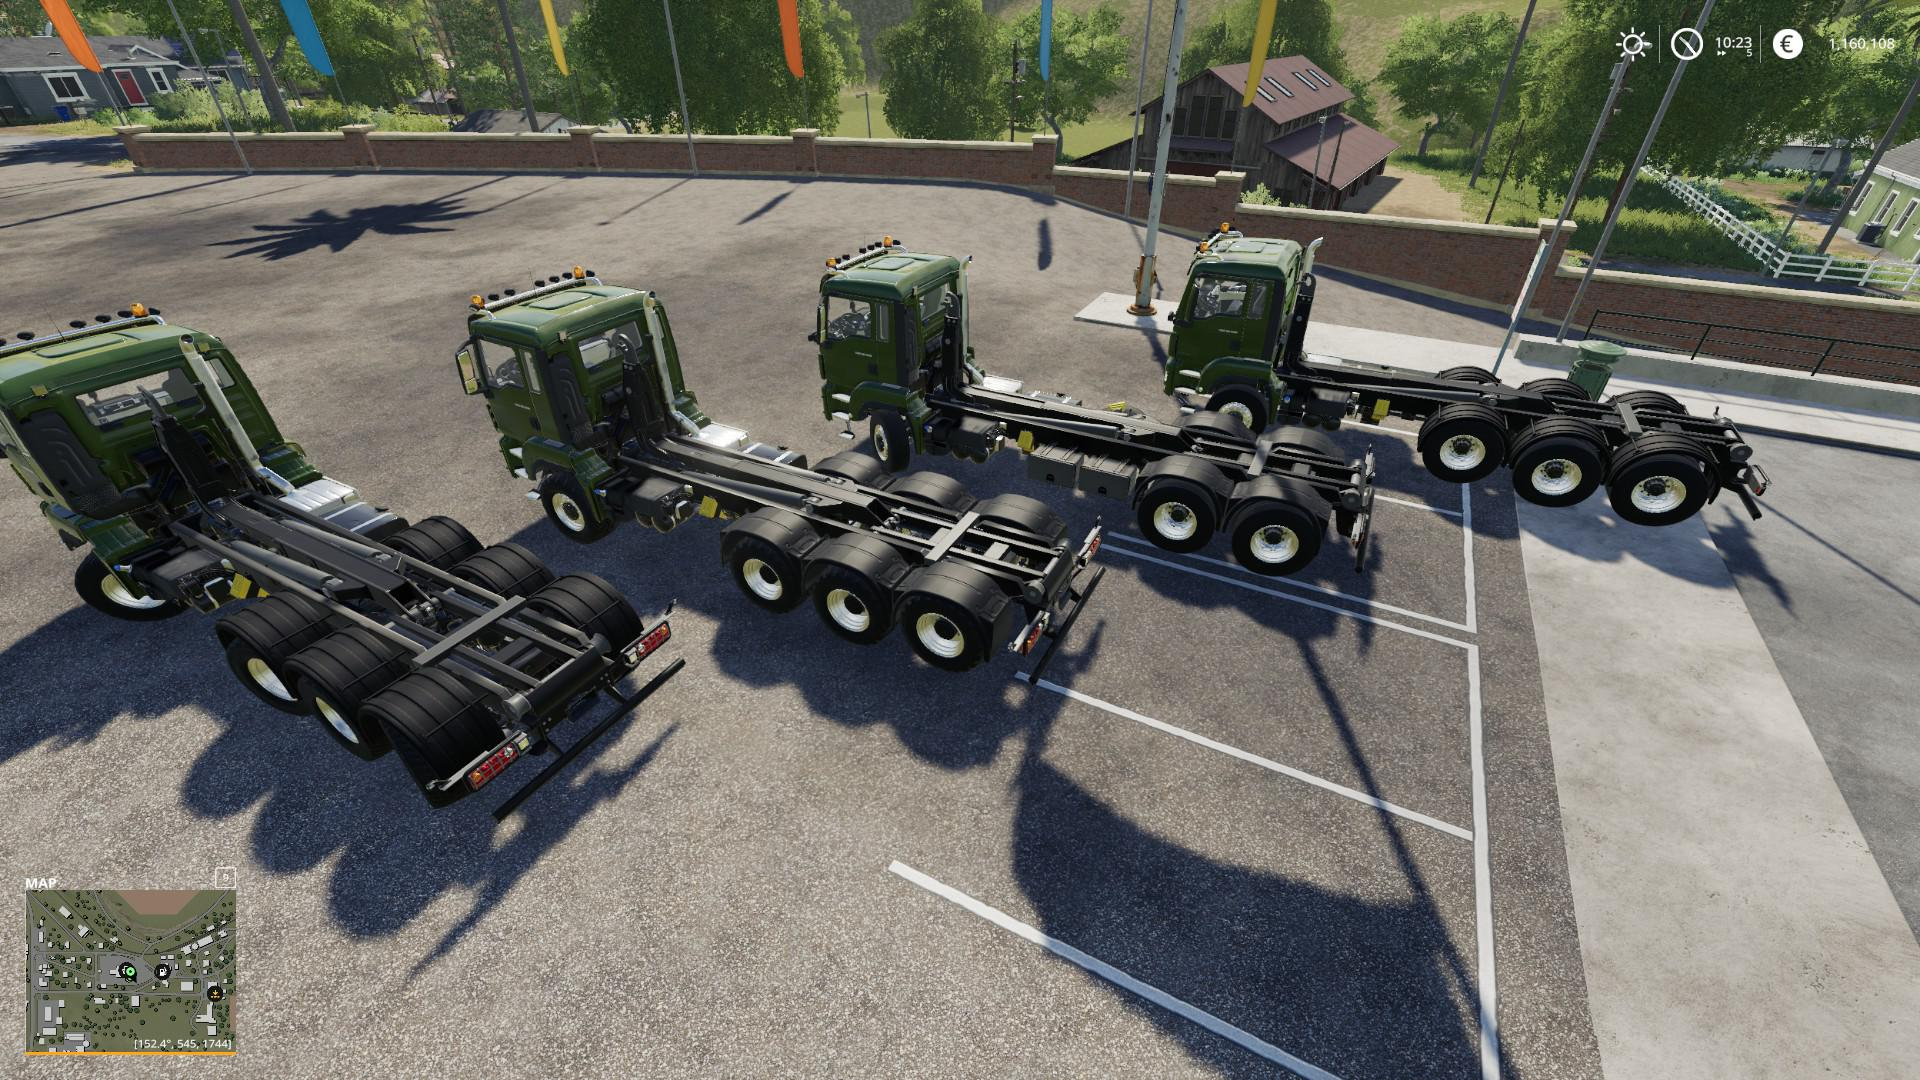 MAN TGS 18.500 HOOKLIFT V1.0.0.0 для Farming Simulator 2019